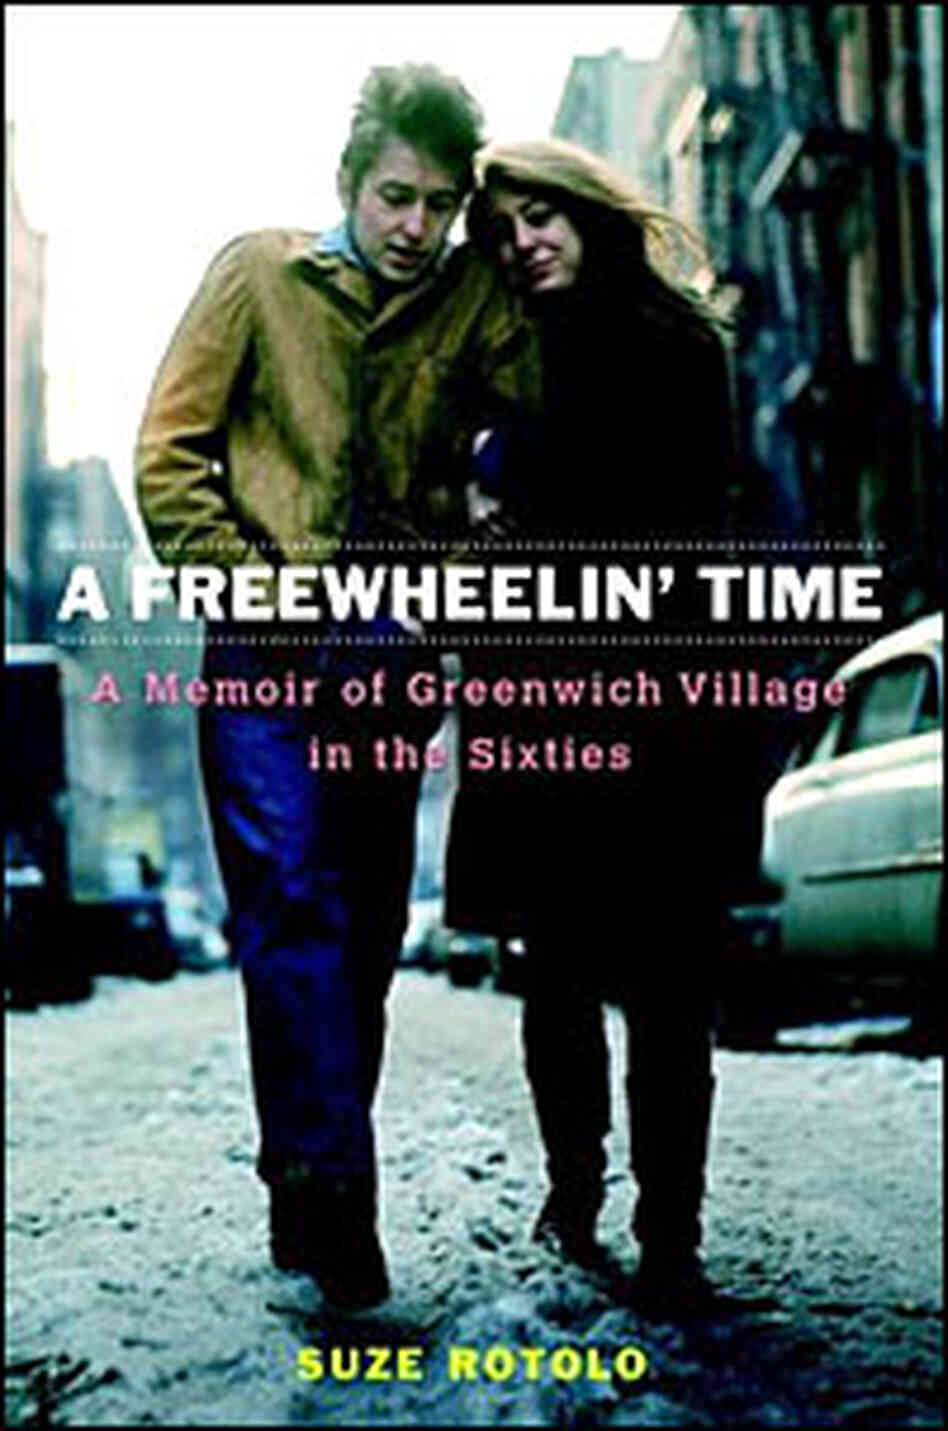 'A Freewheelin' Time' cover